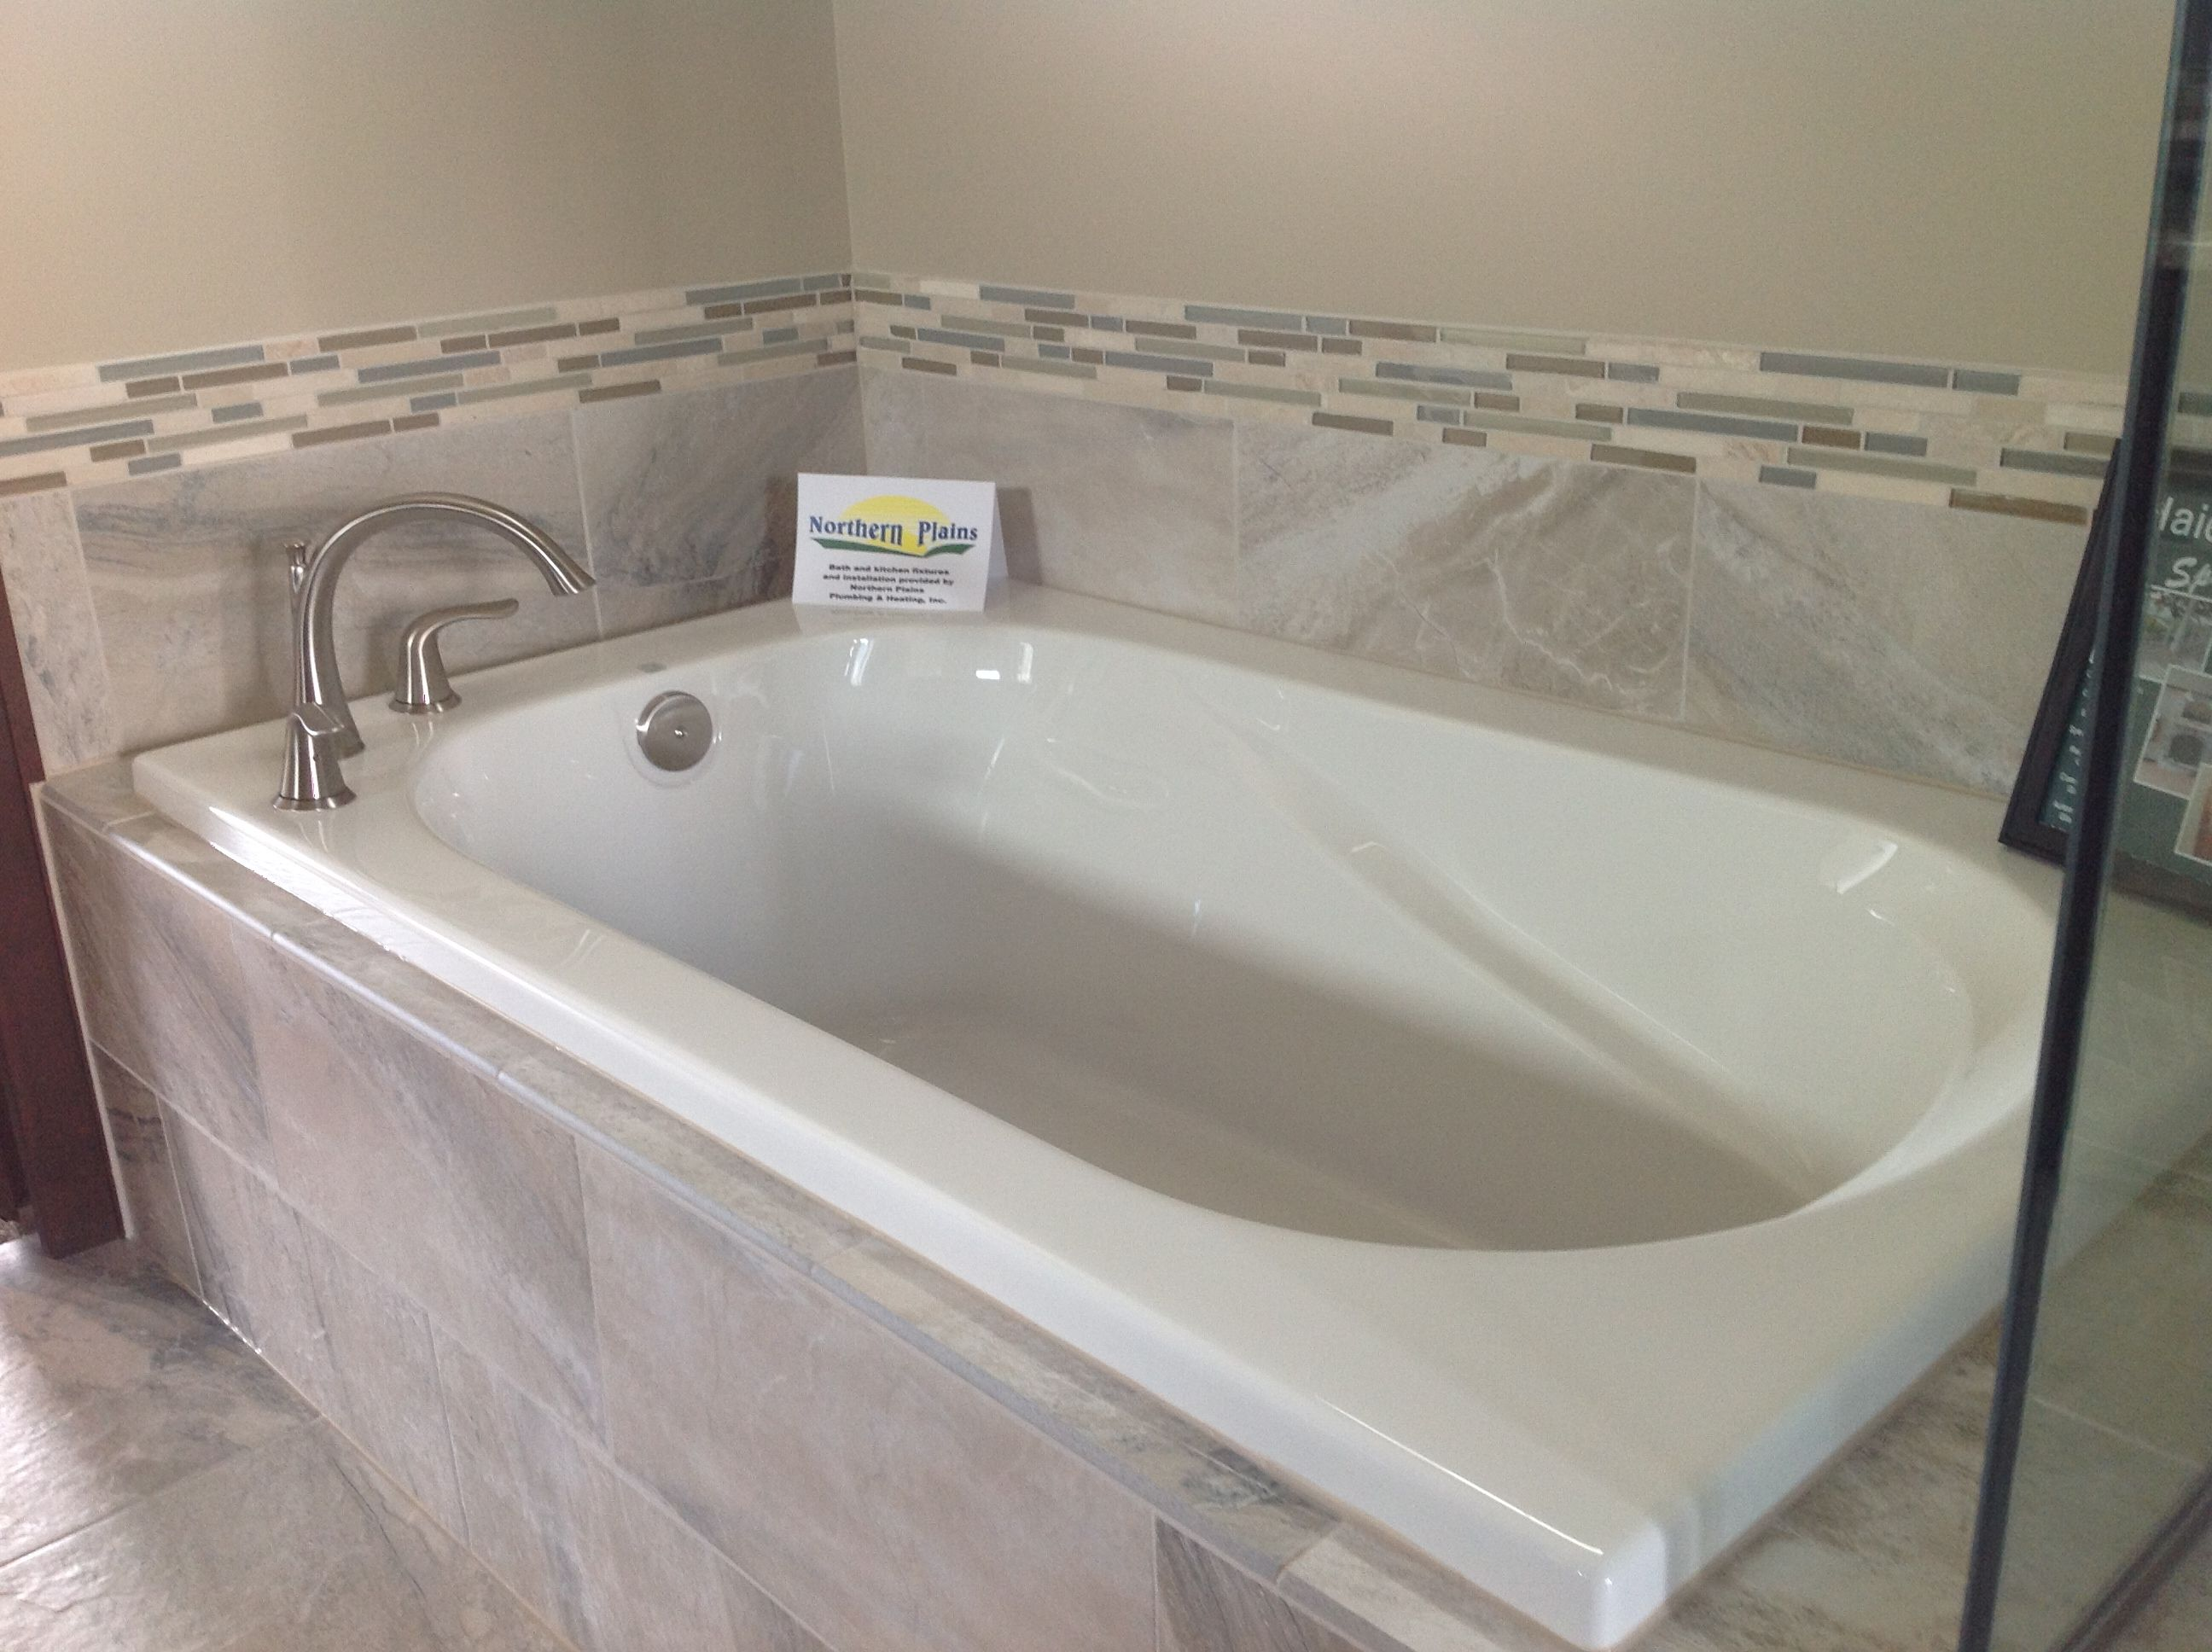 Drop In Tub With Gray Tile Tub Remodel Bathtub Tile